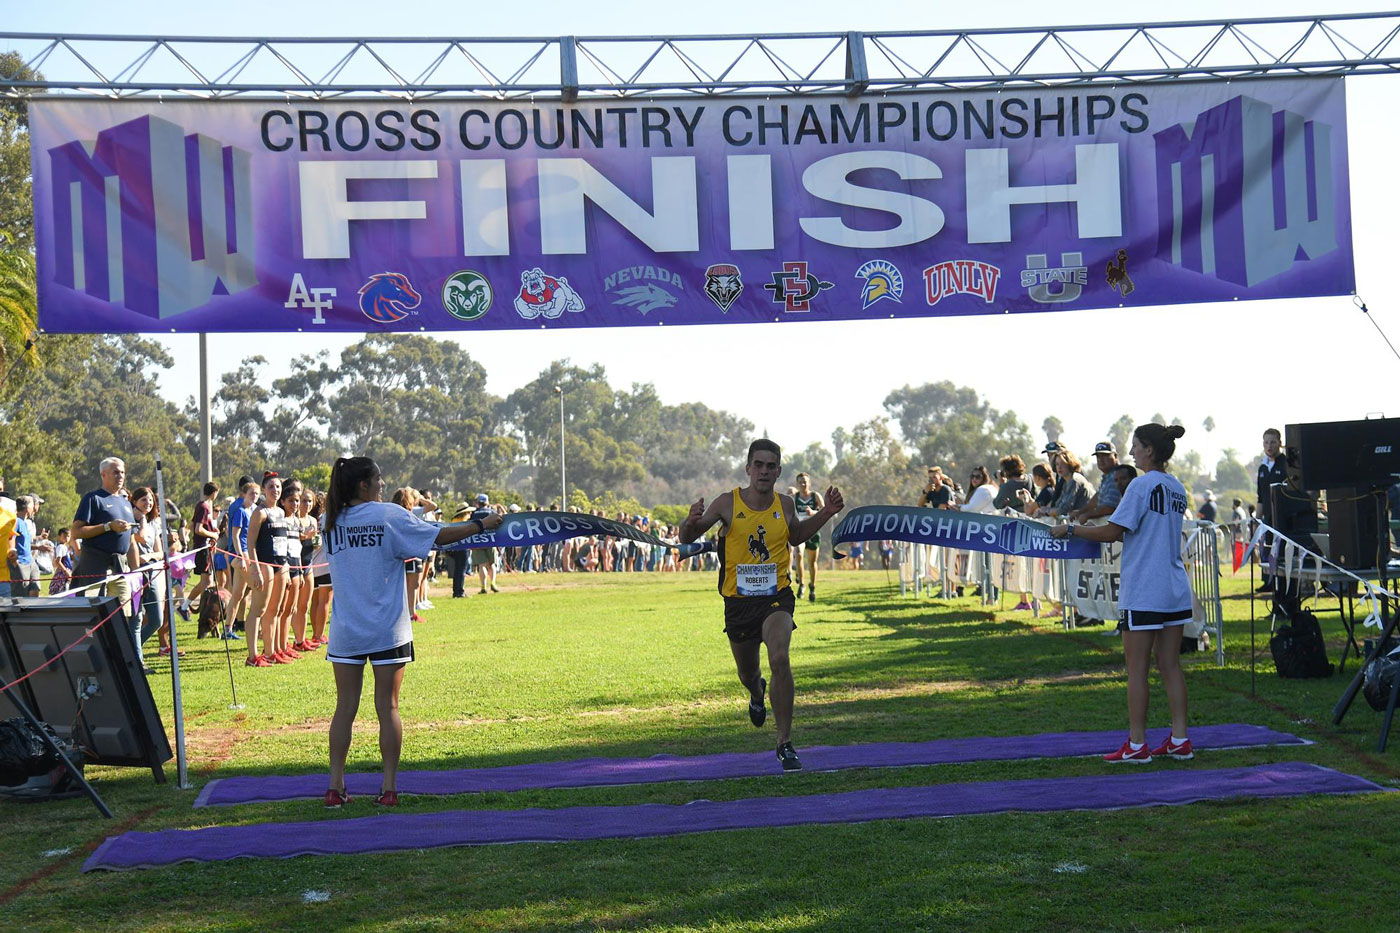 Cowboy Runner Paul Roberts Claims Mountain West Cross Country Title